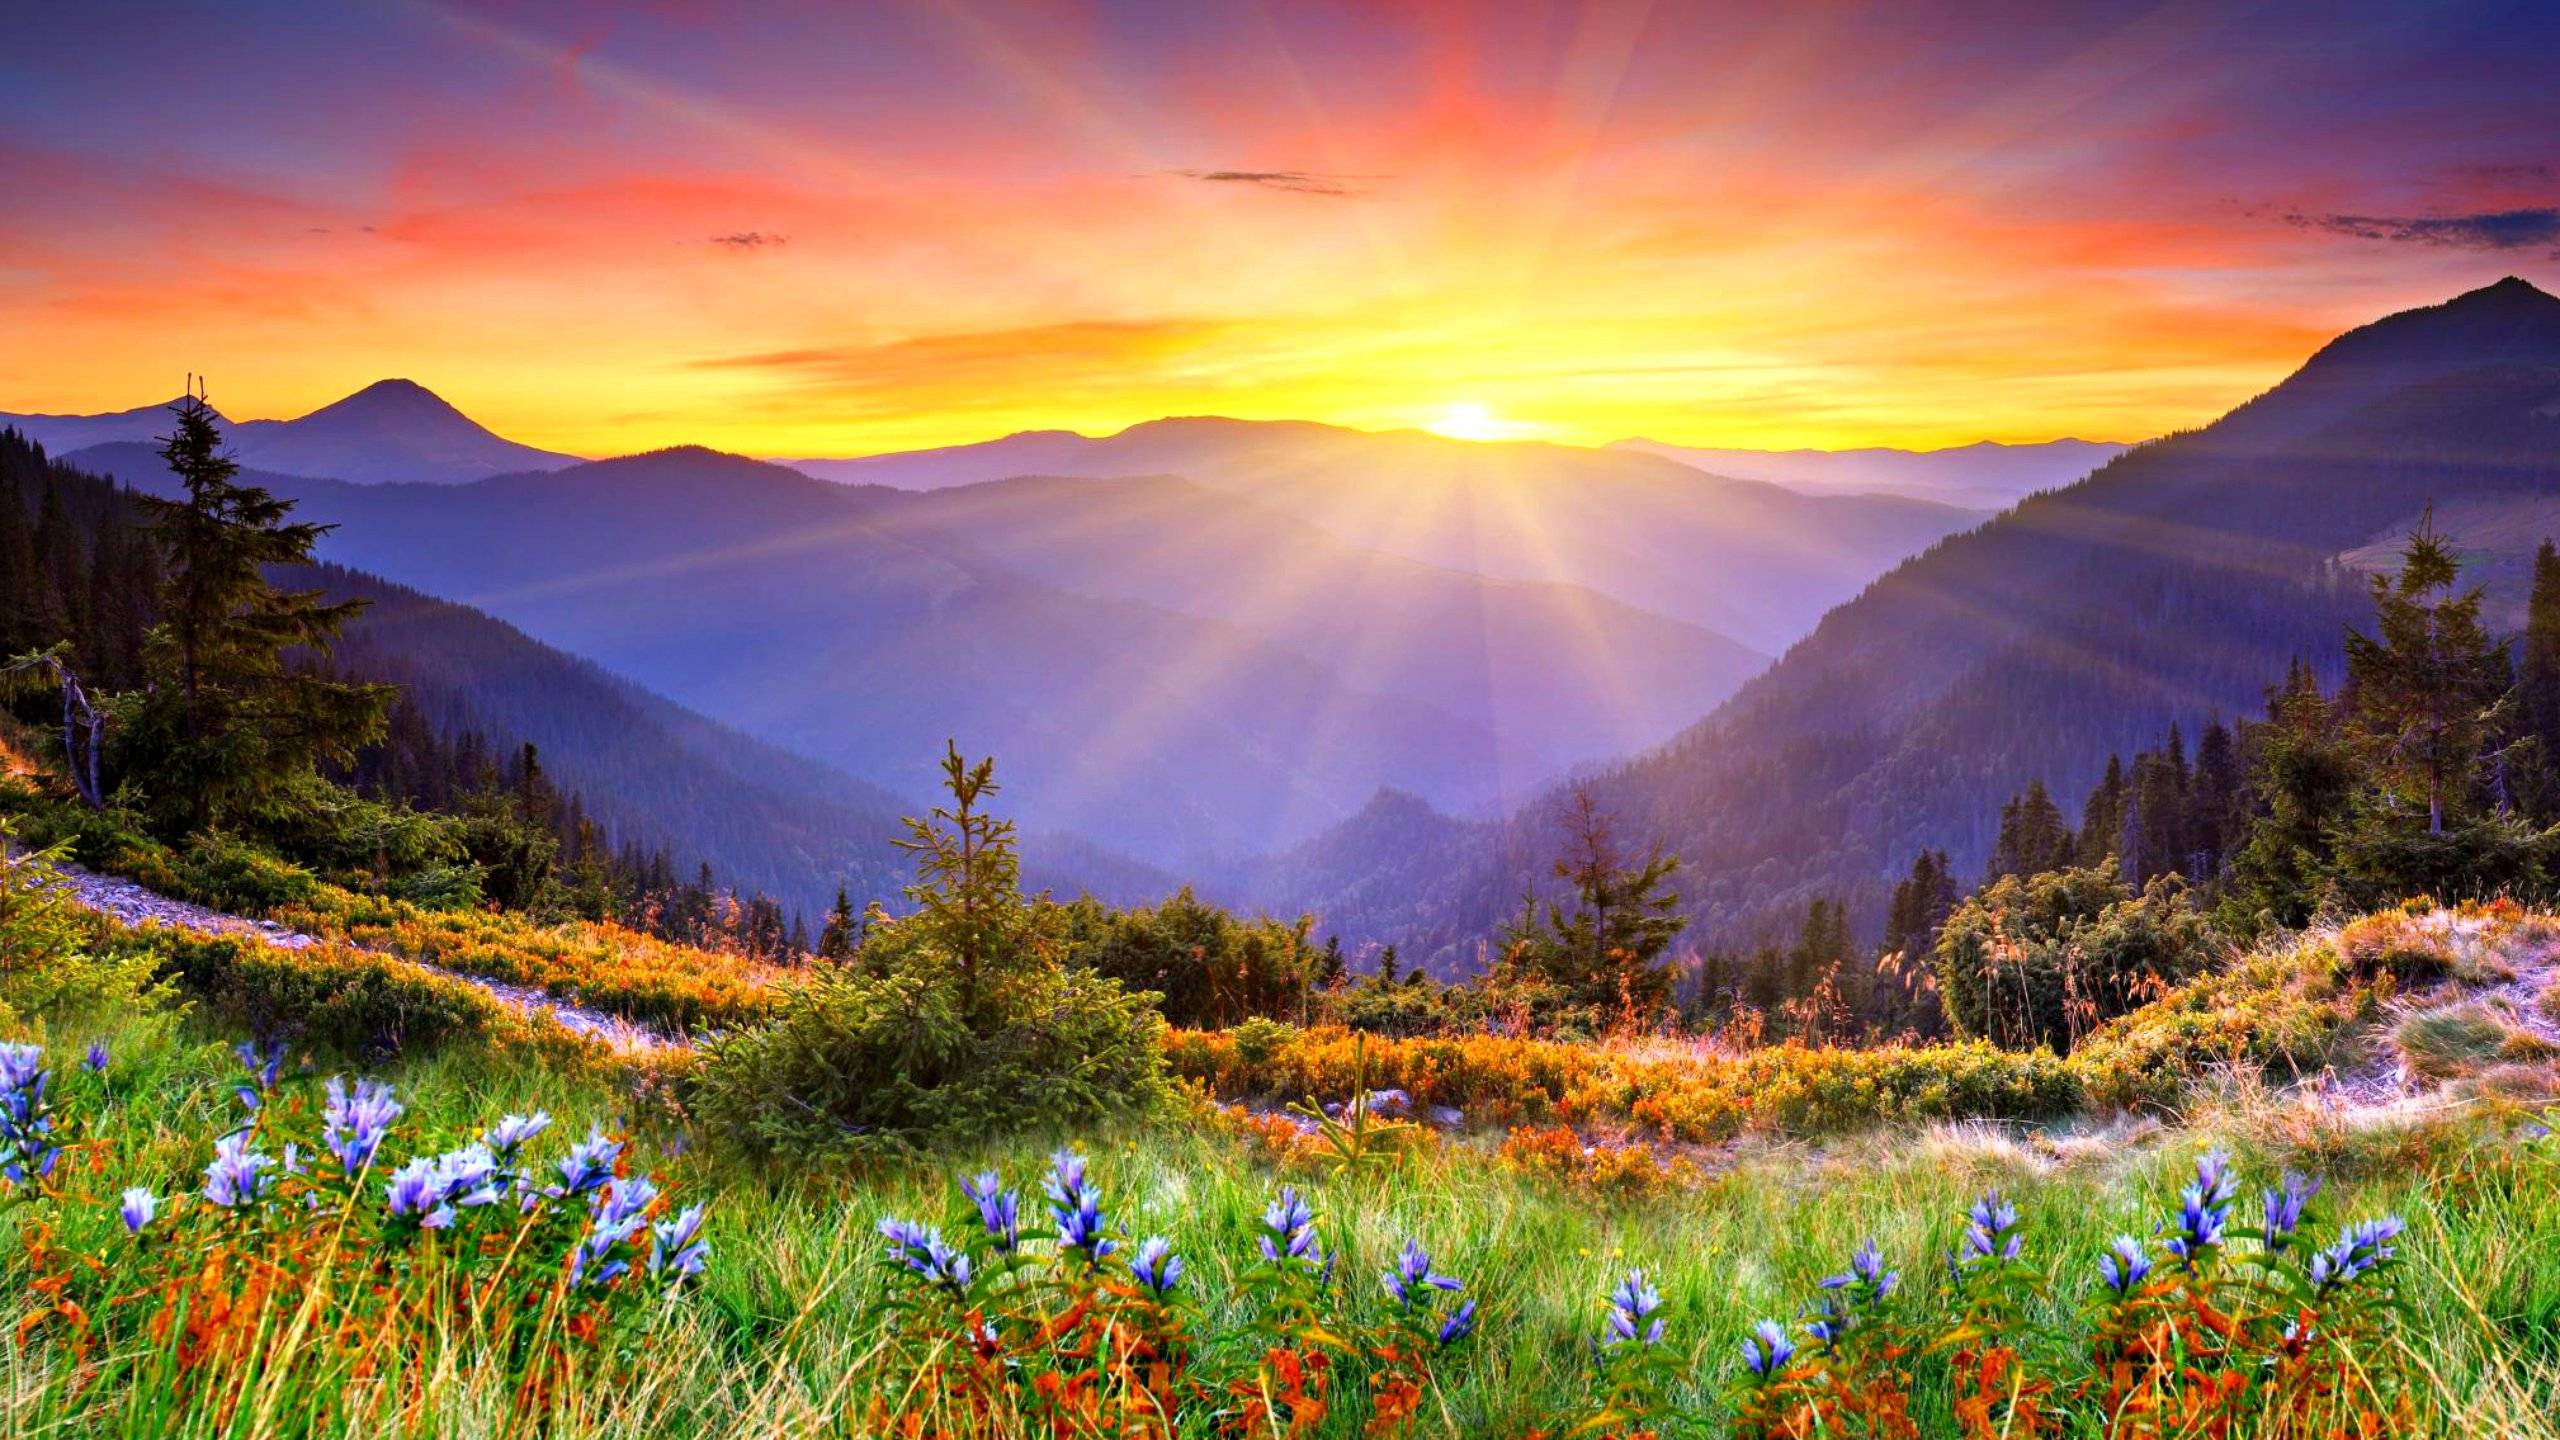 Sunrise Wallpapers Archives   HDWallSourcecom   HDWallSourcecom 2560x1440